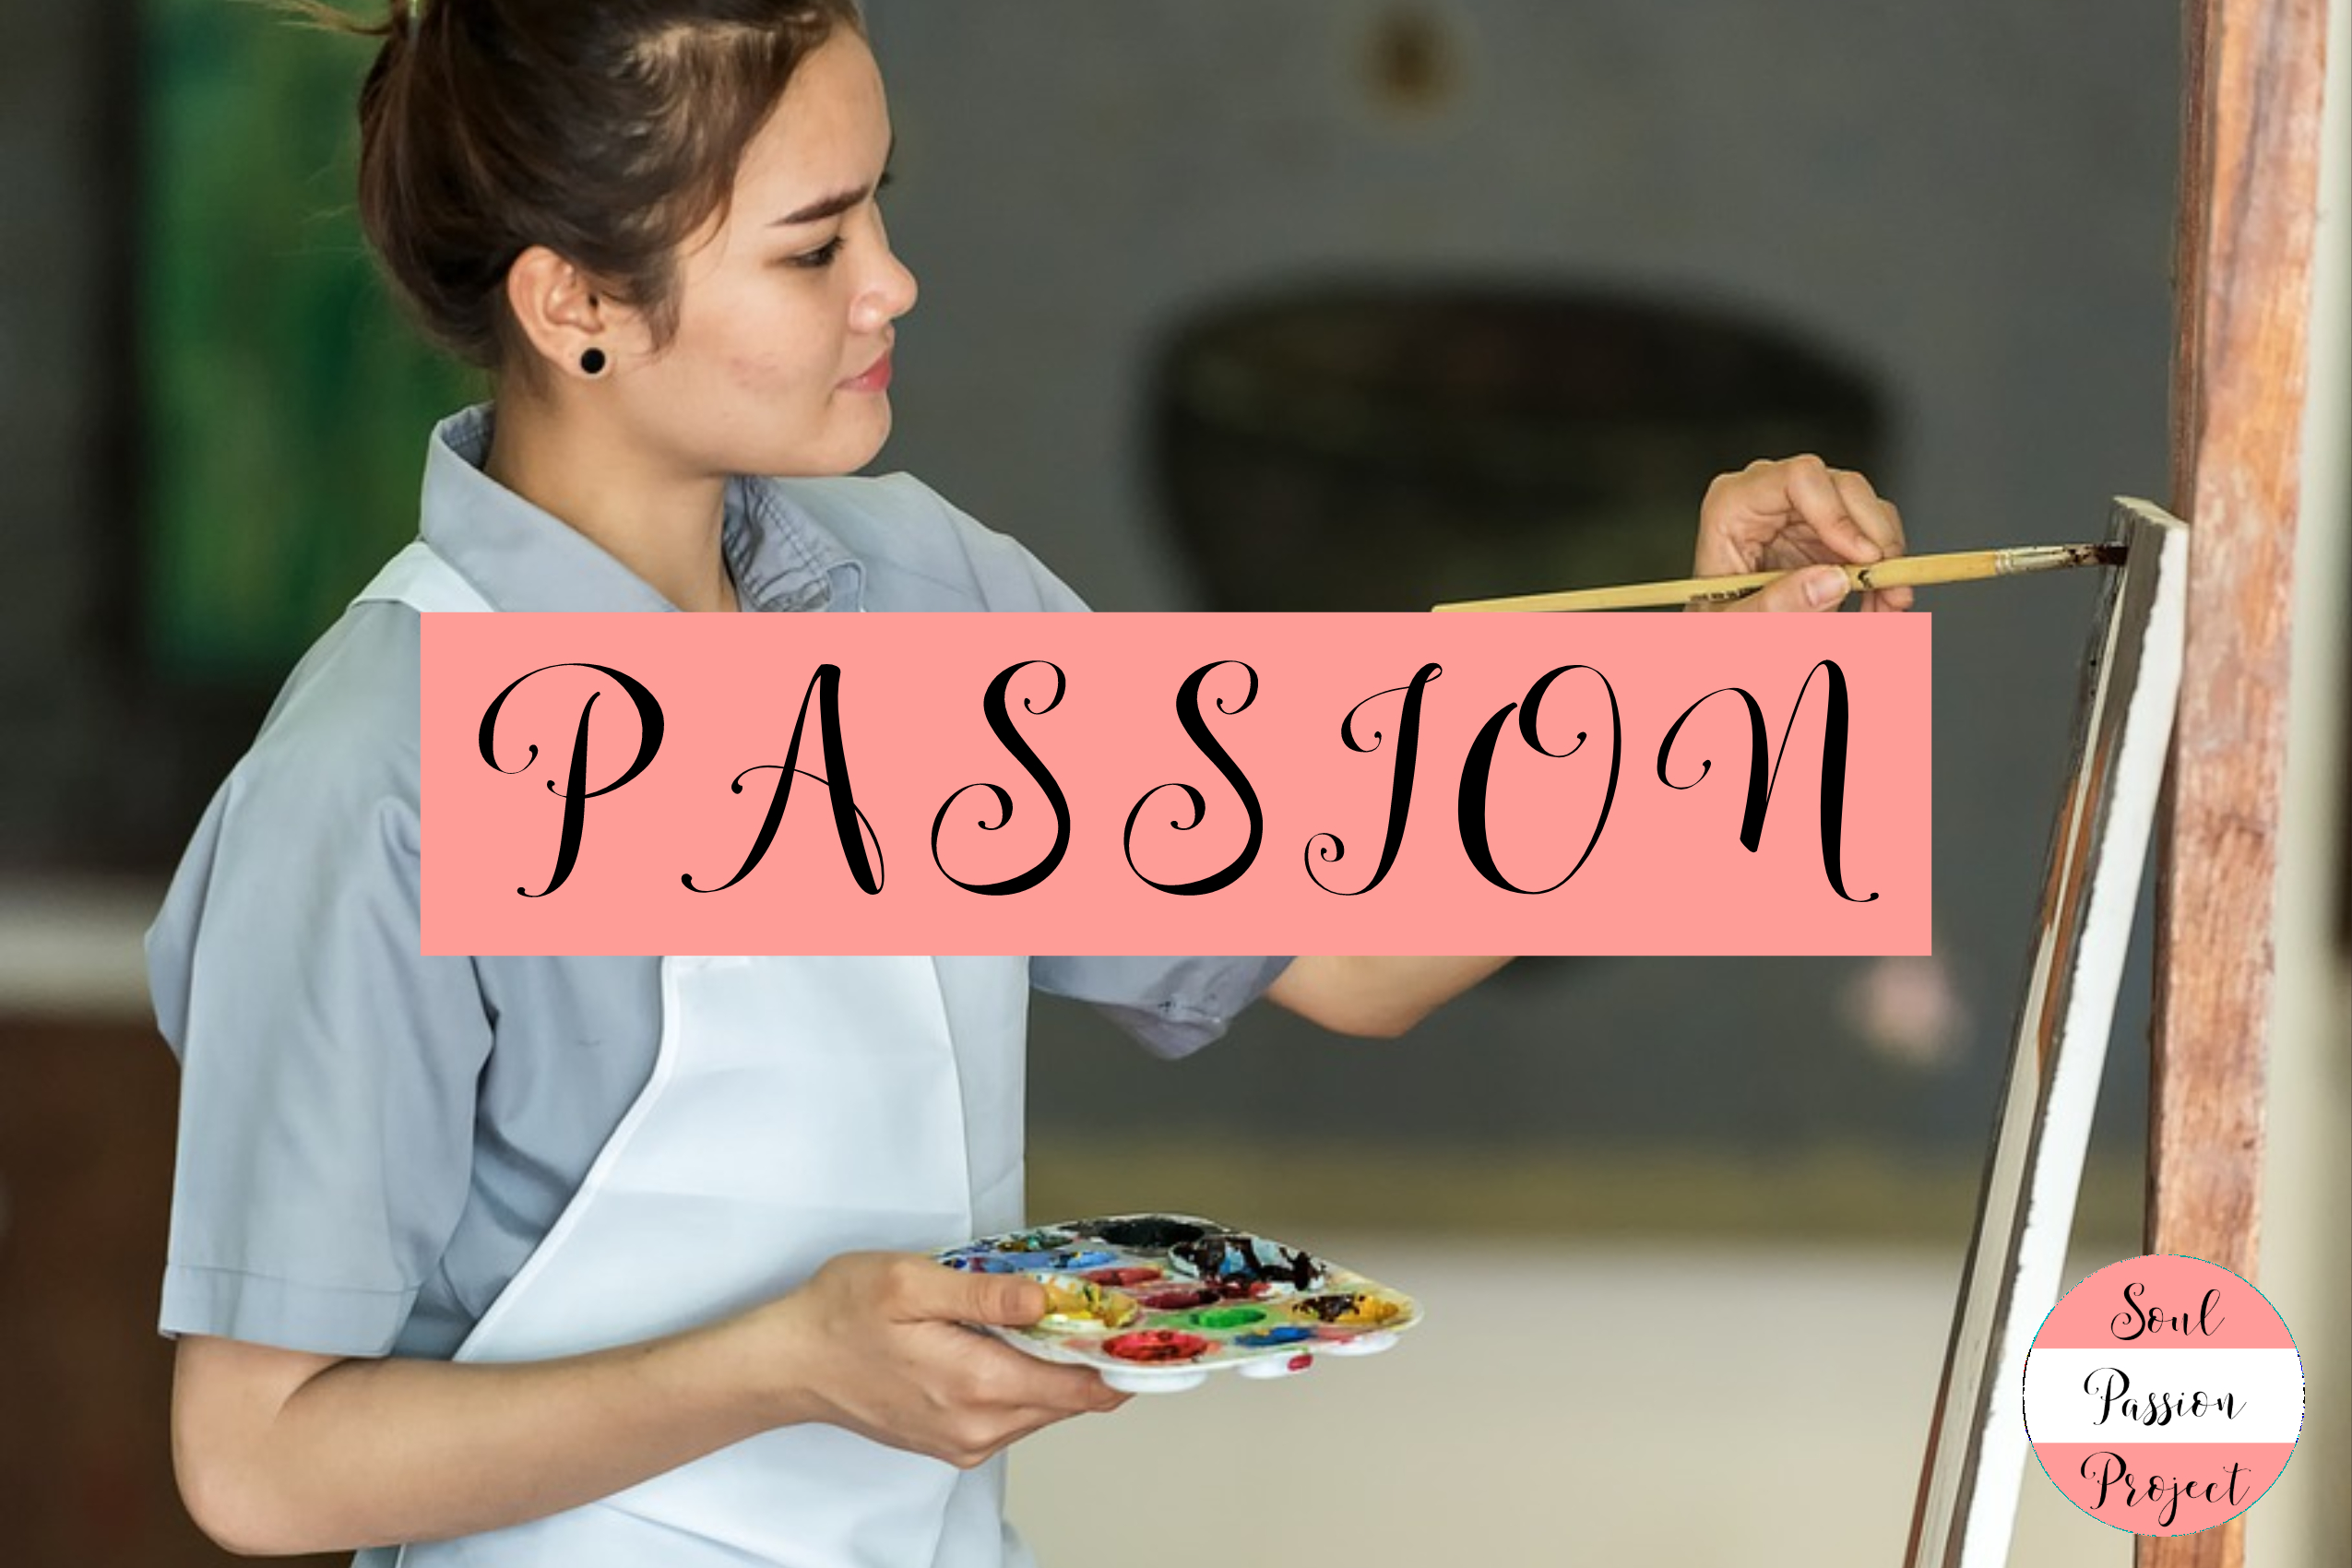 PASSION | Be Ignited!